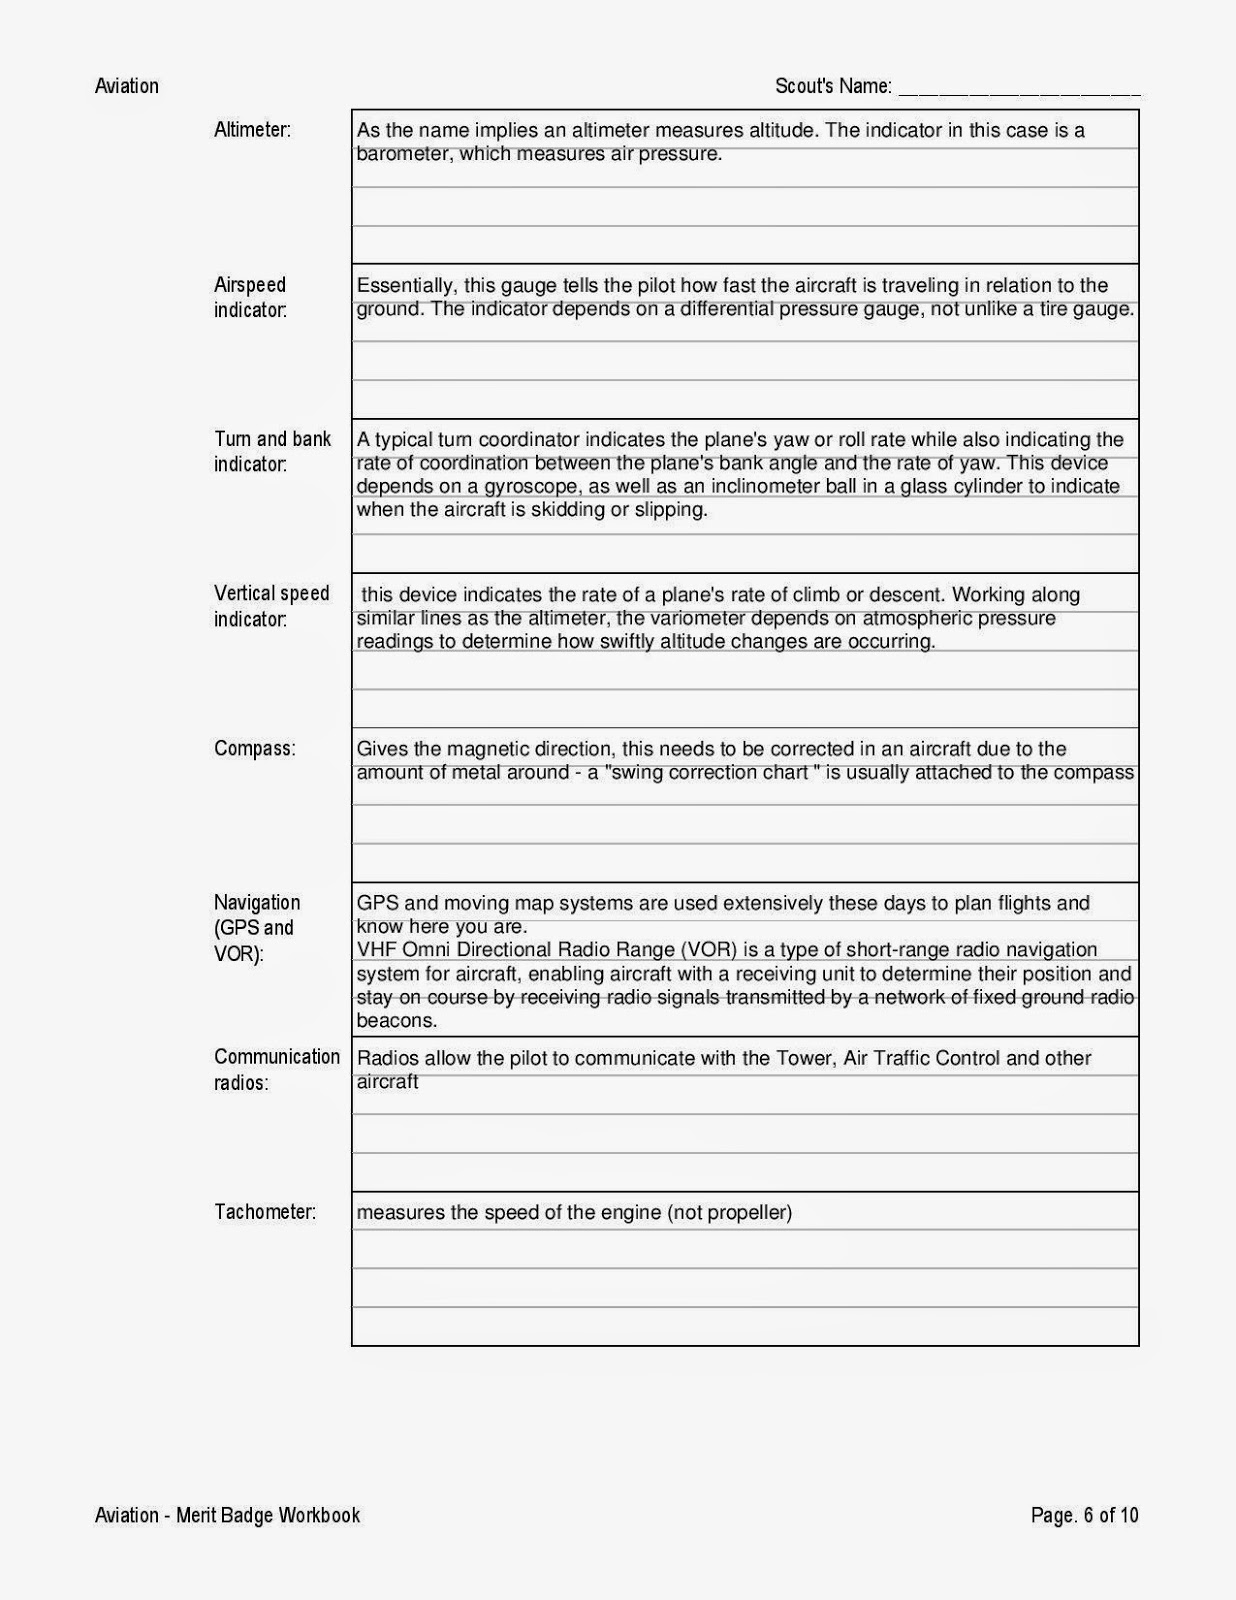 Boy Scout Troop 107 Greensboro NC Aviation Merit Badge workbook – Merit Badge Worksheet Answers